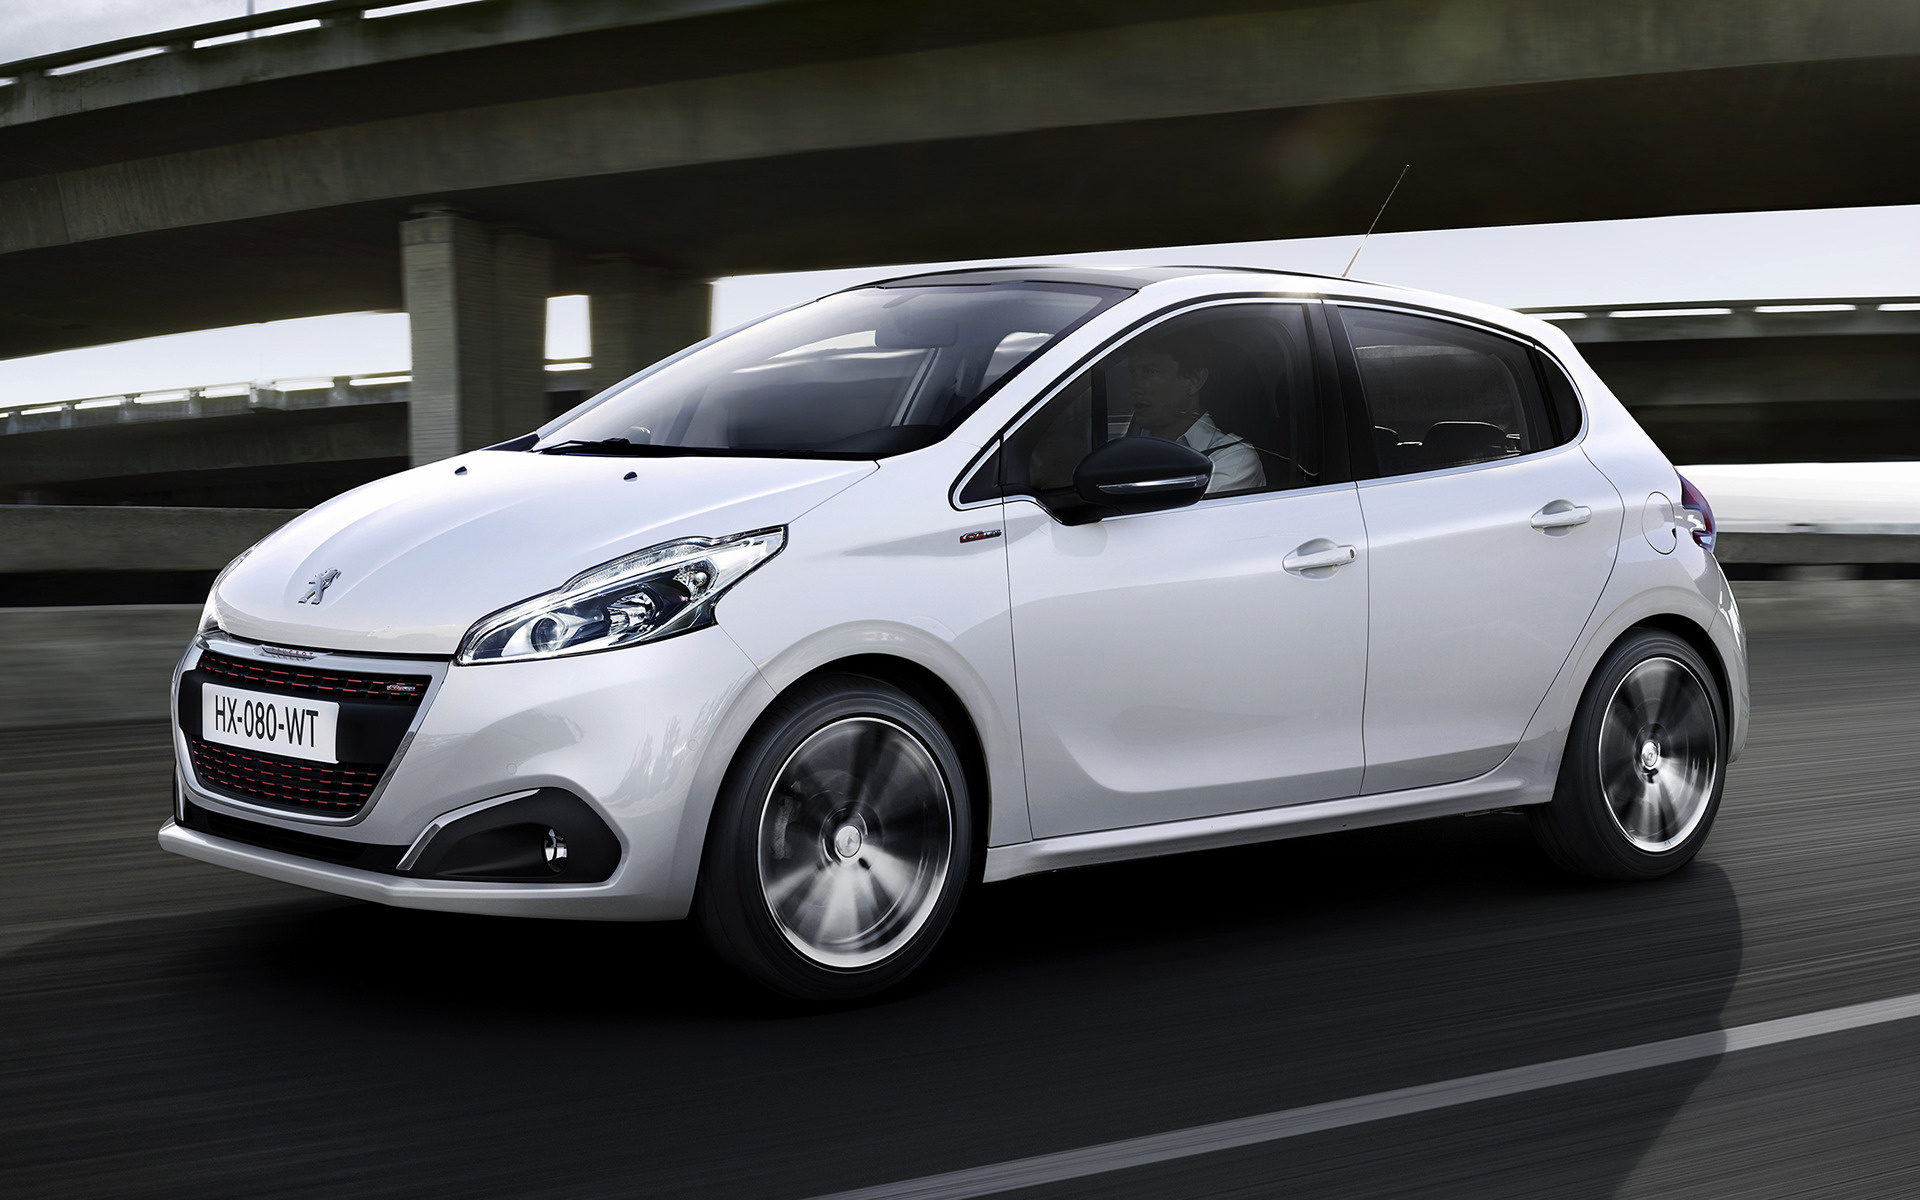 peugeot 208 gt line 5door 2015 wallpapers and hd images